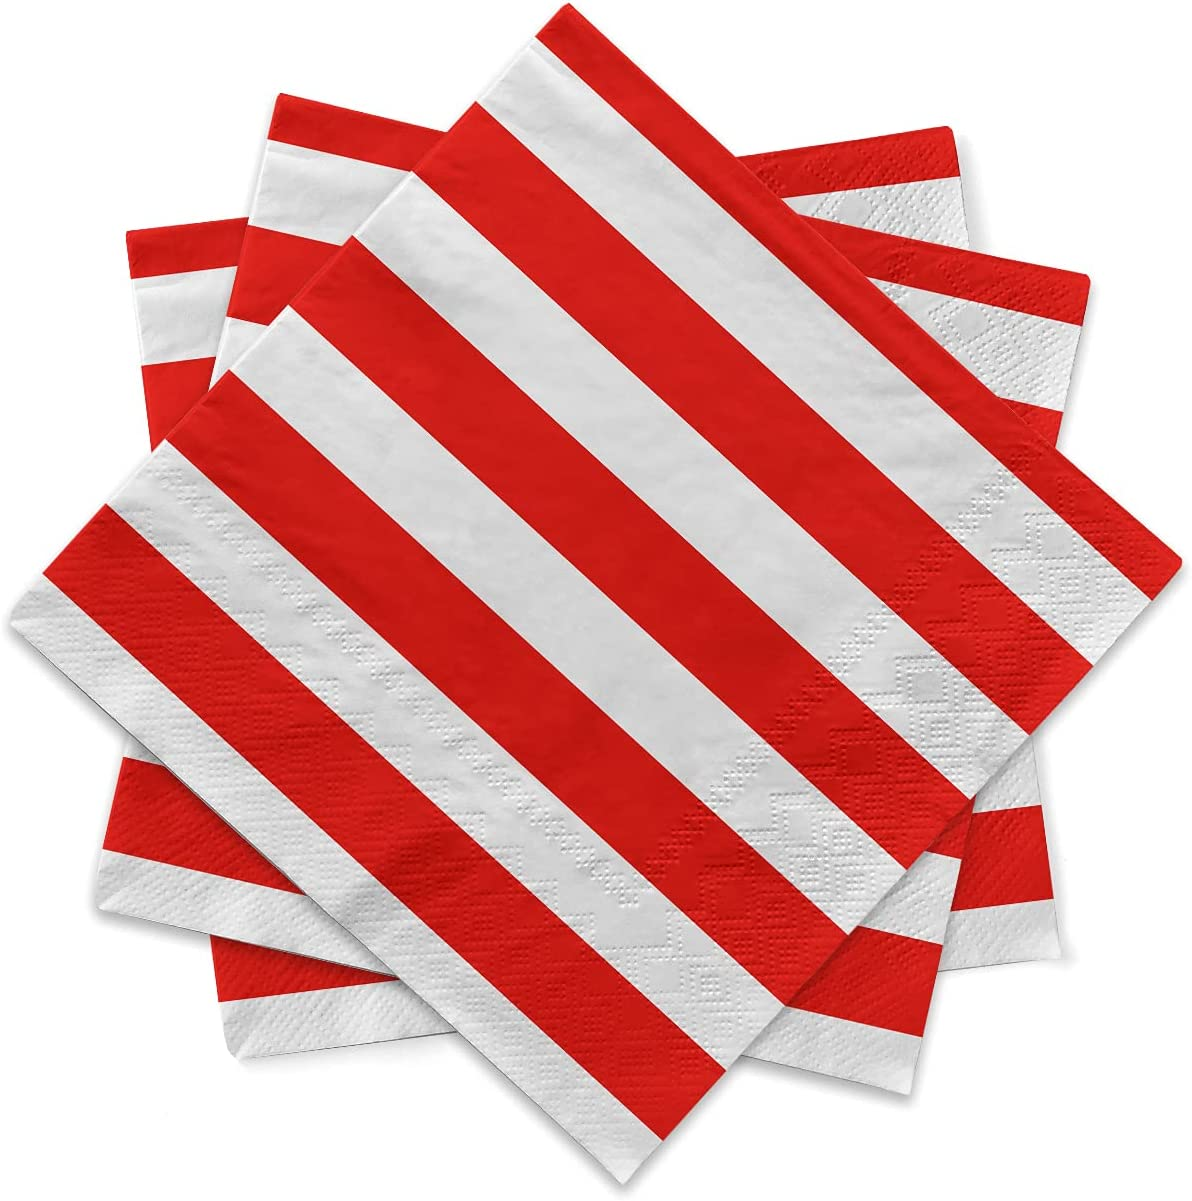 Gatherfun Disposable Paper Napkins 3-ply Red and White Stripe Beverage Napkins for Dinner, Picnic, Birthday Party(6.5X6.5inches, 20-Pack)